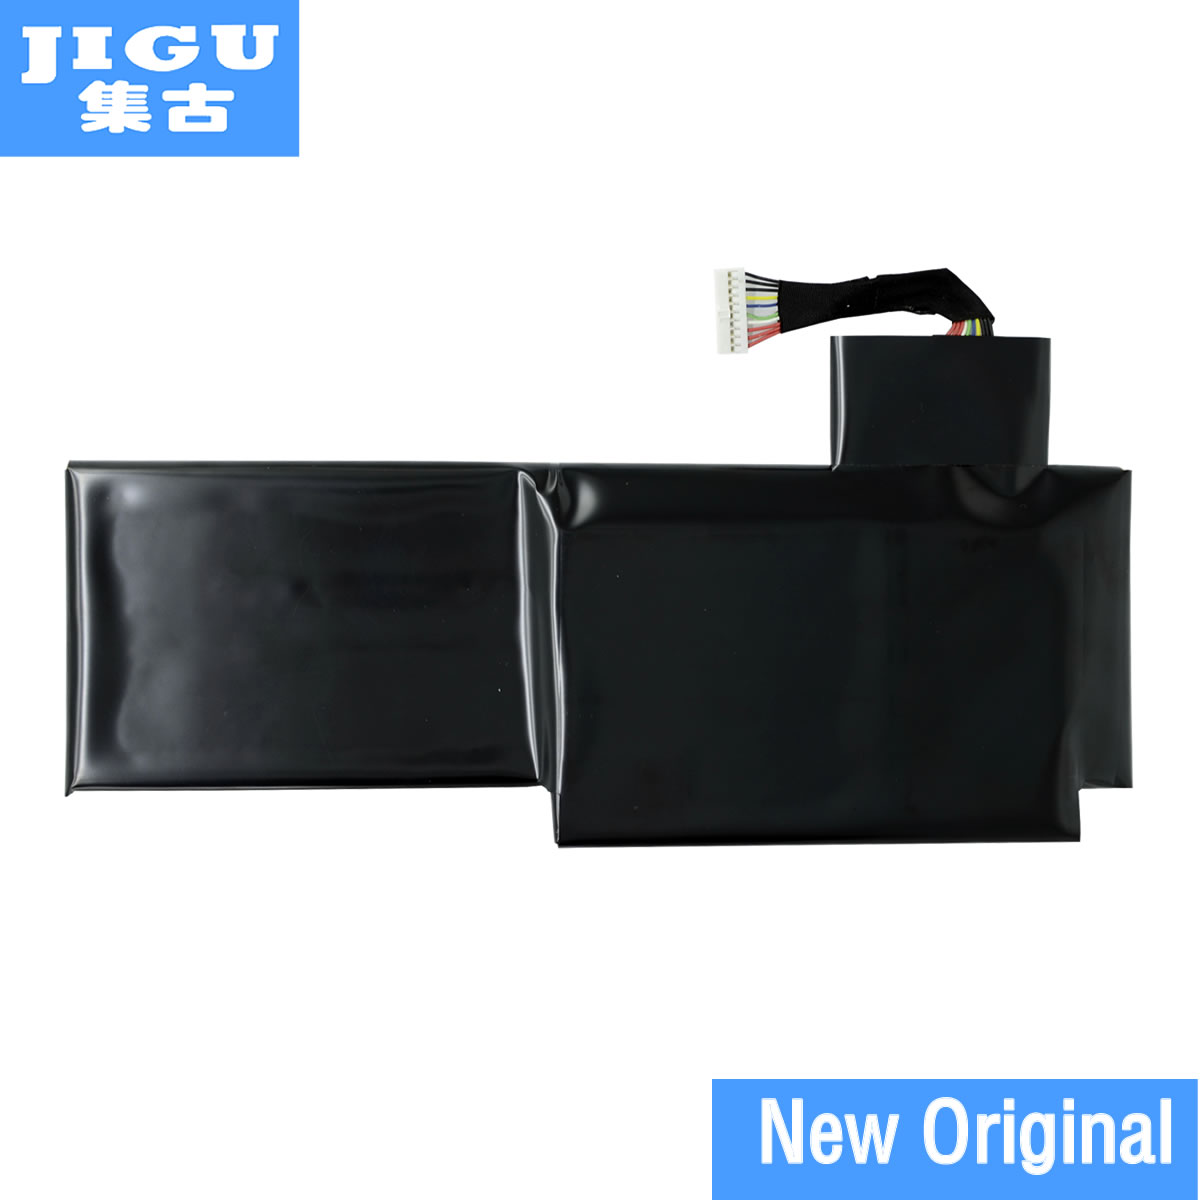 JIGU BTY-L76 MS-1771 Original laptop Battery For MSI GS70 2PC 2PE 2QC 2QD 2QE FOR MEDION X7613 MD98802 FOR HAIER 7G-700 laptop keyboard for msi ms 16f1 cx660 cx660r ms 16f2 gx680 gx680r ms 1671 gt780r gx780 gx780r black with frame sw swiss